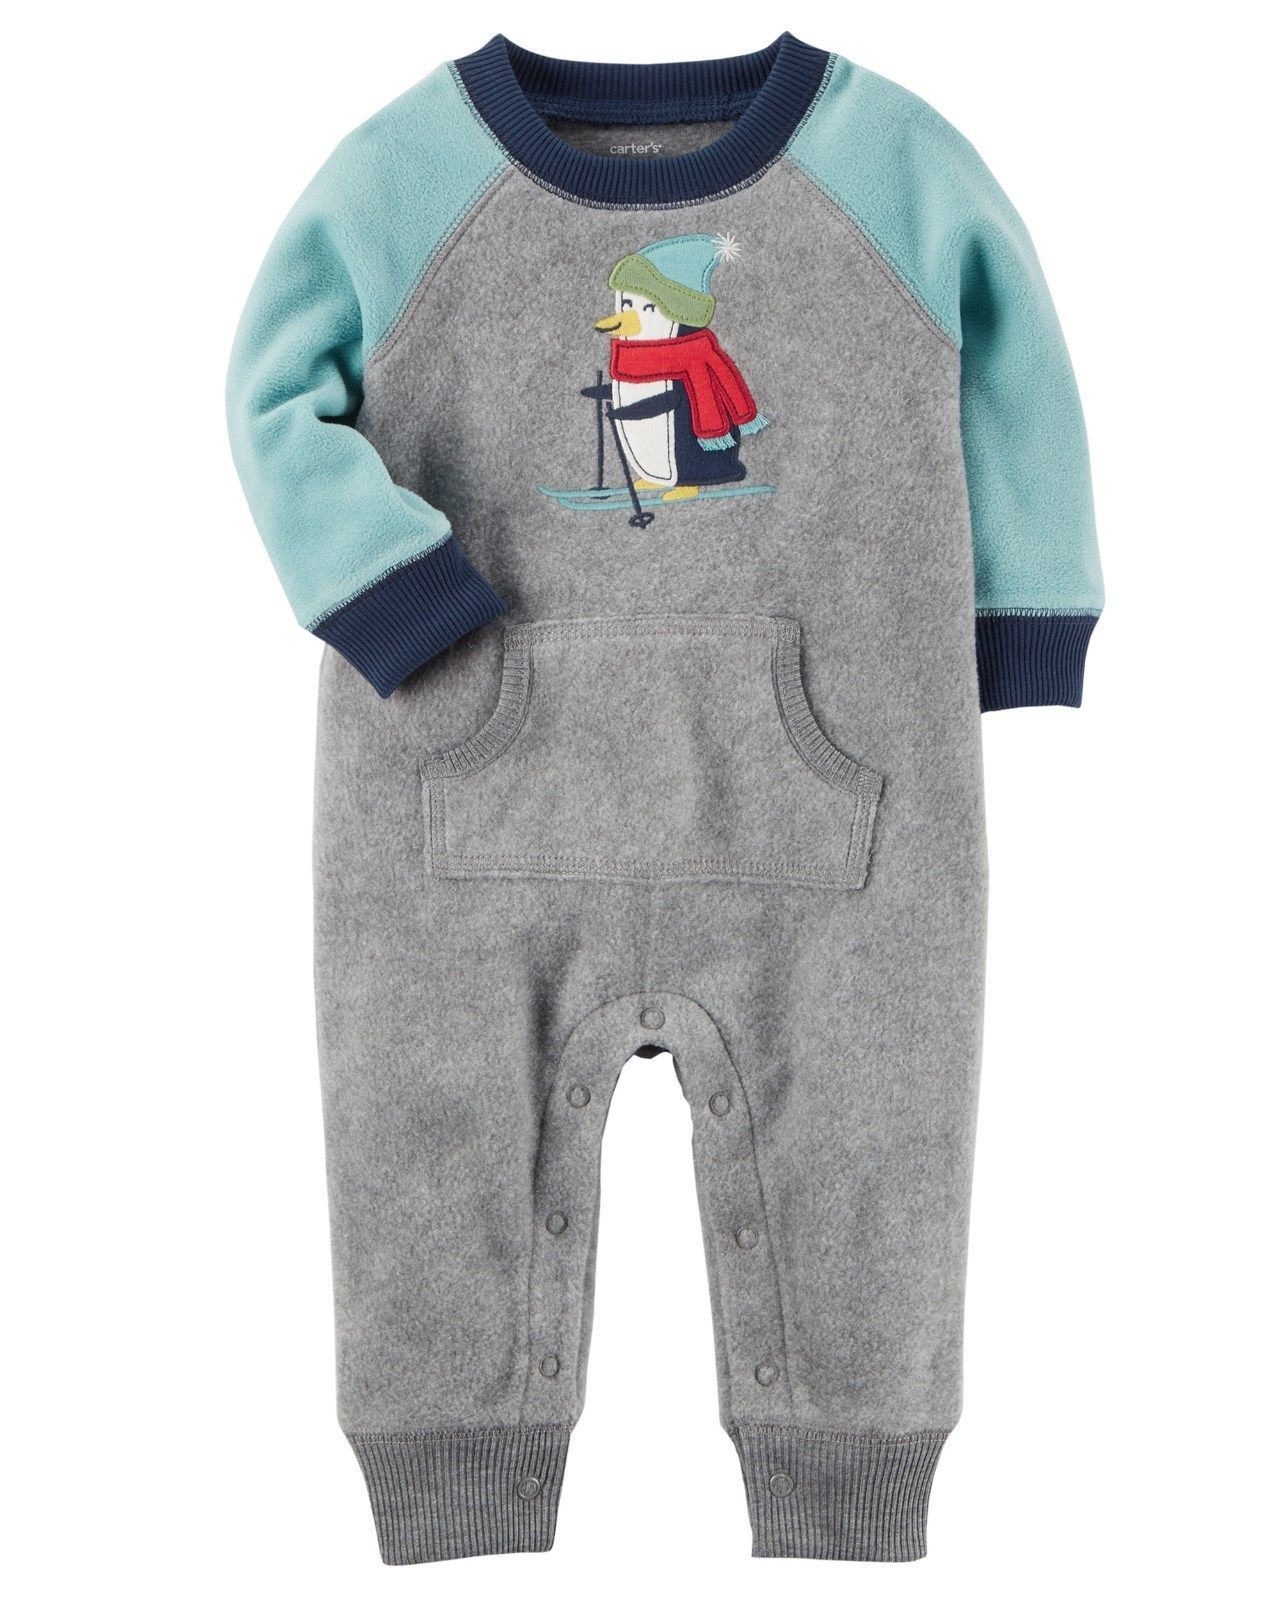 9ed551d87  11 - Carter s 1 Piece Romper Fleece Penguin Ski Raglan Nwt 3 6 9 12 ...